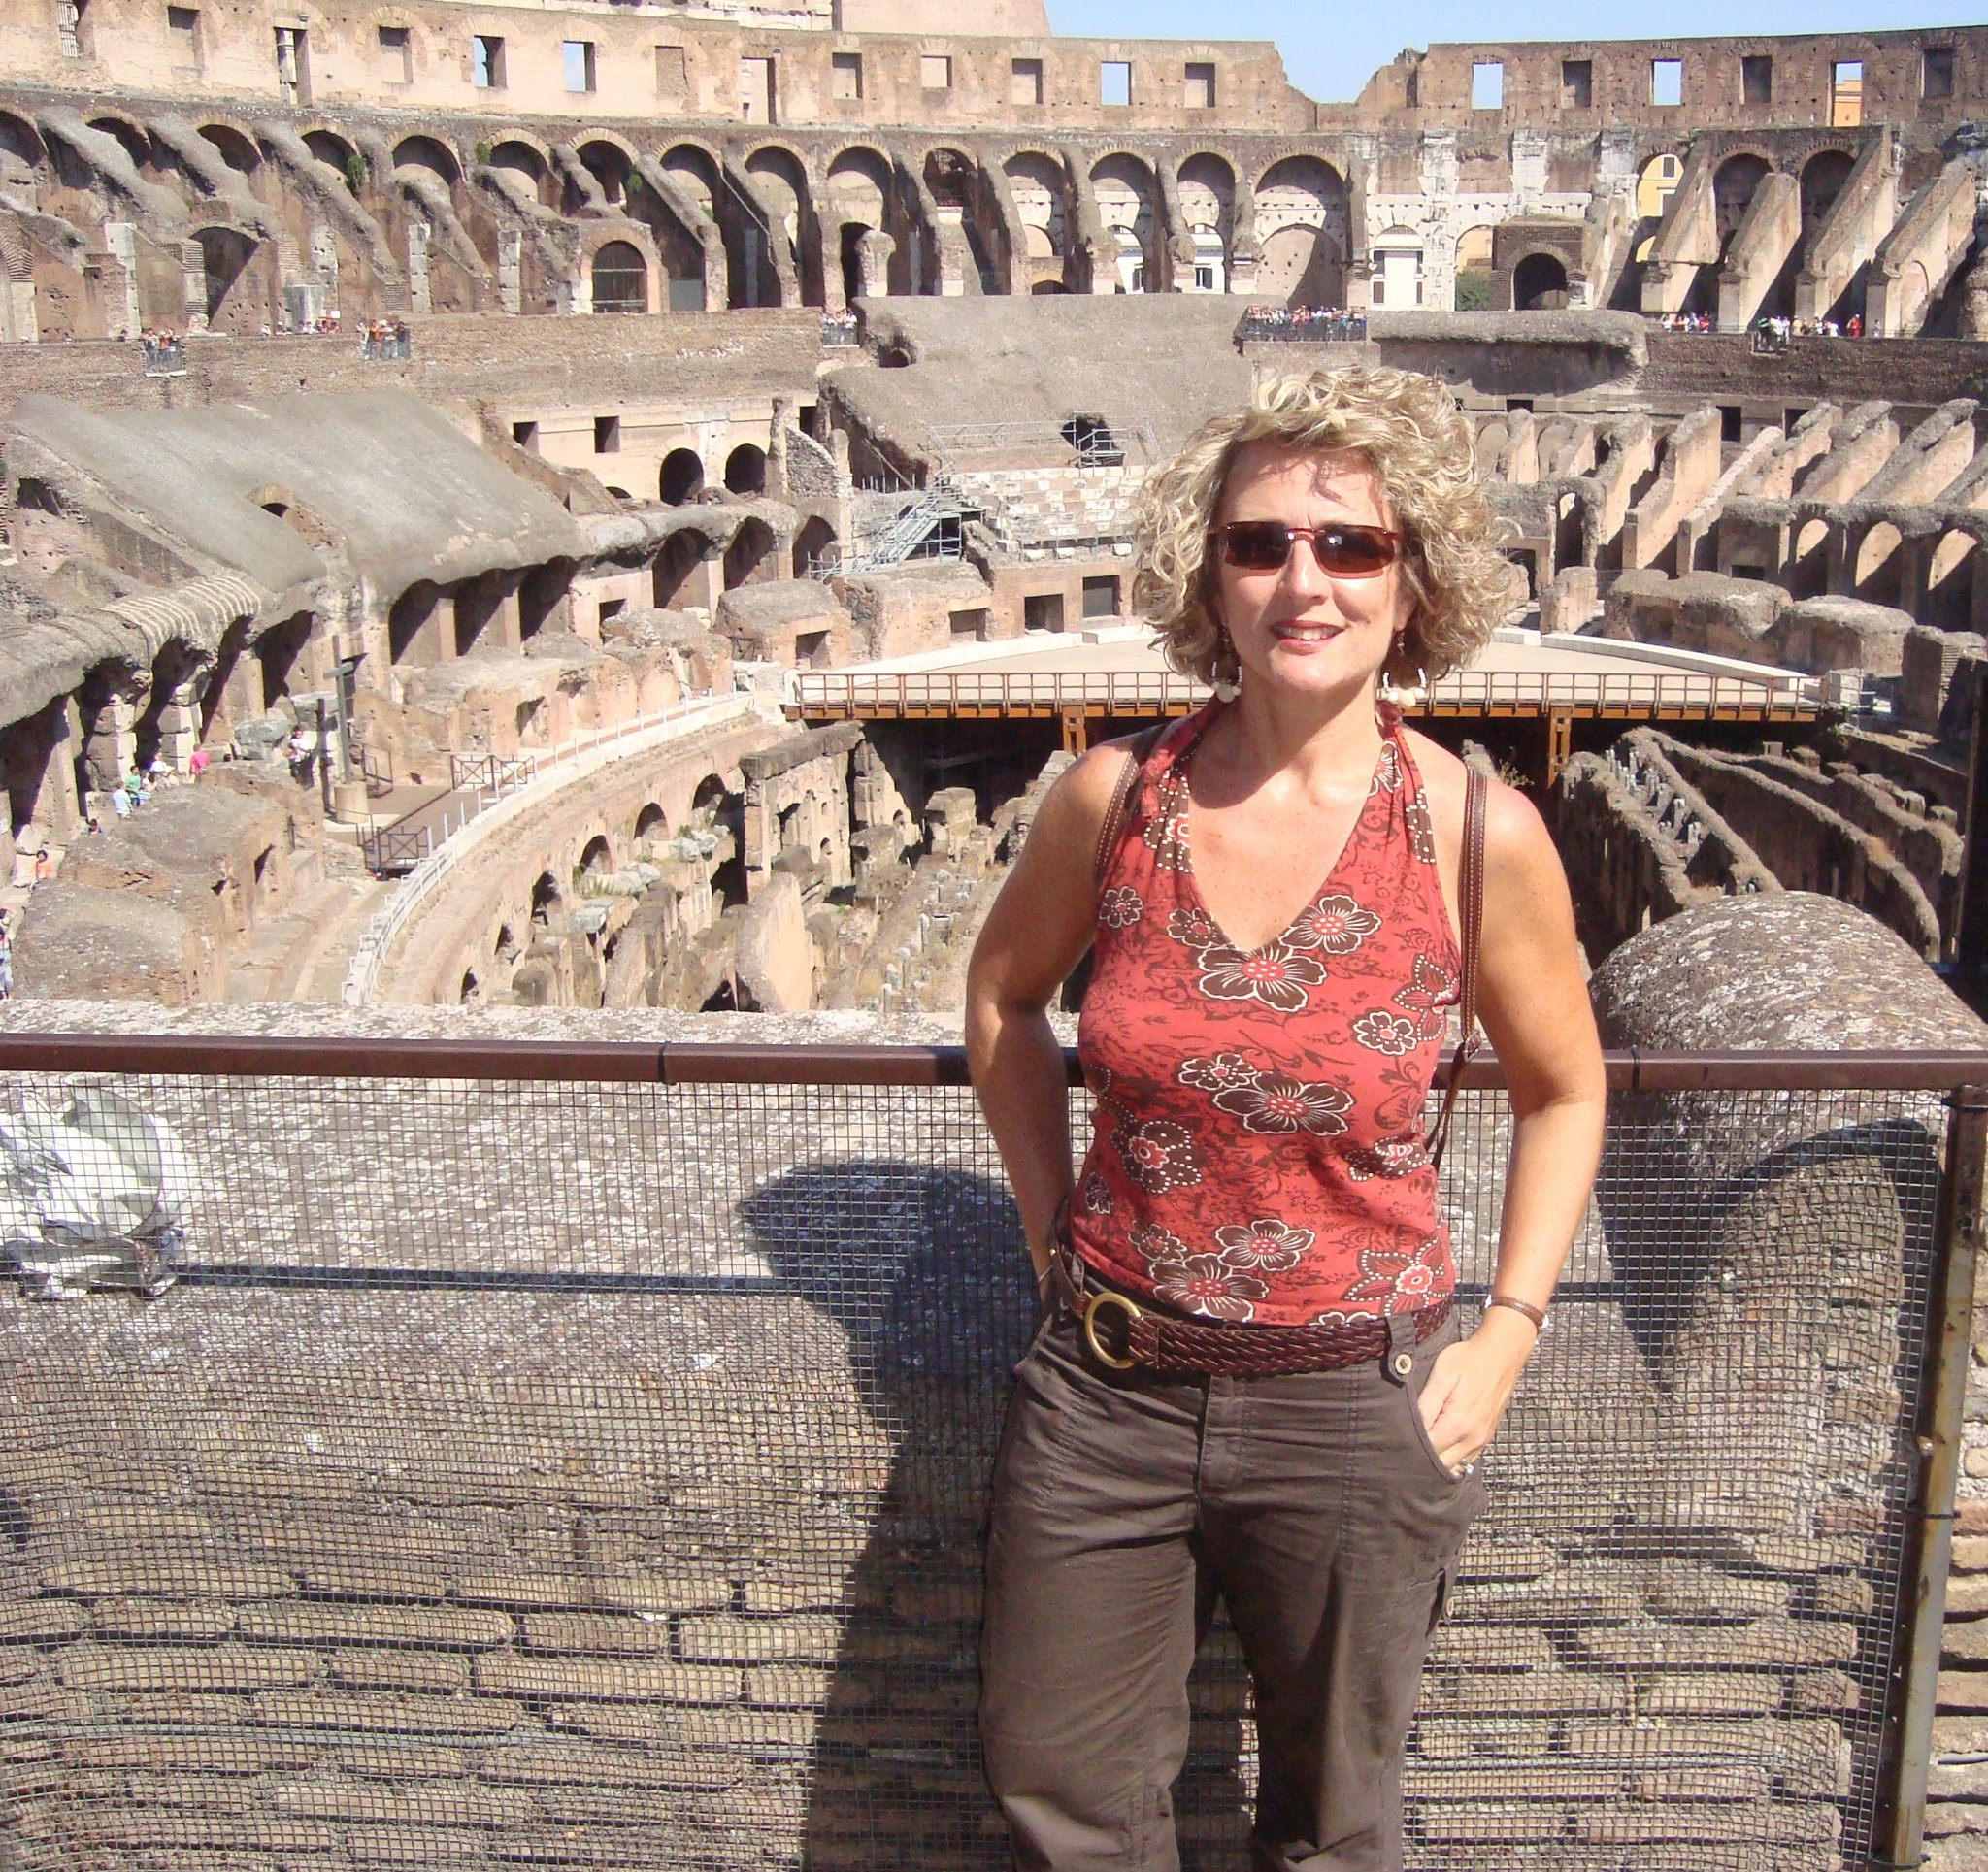 Jenny at the Roman Colosseum